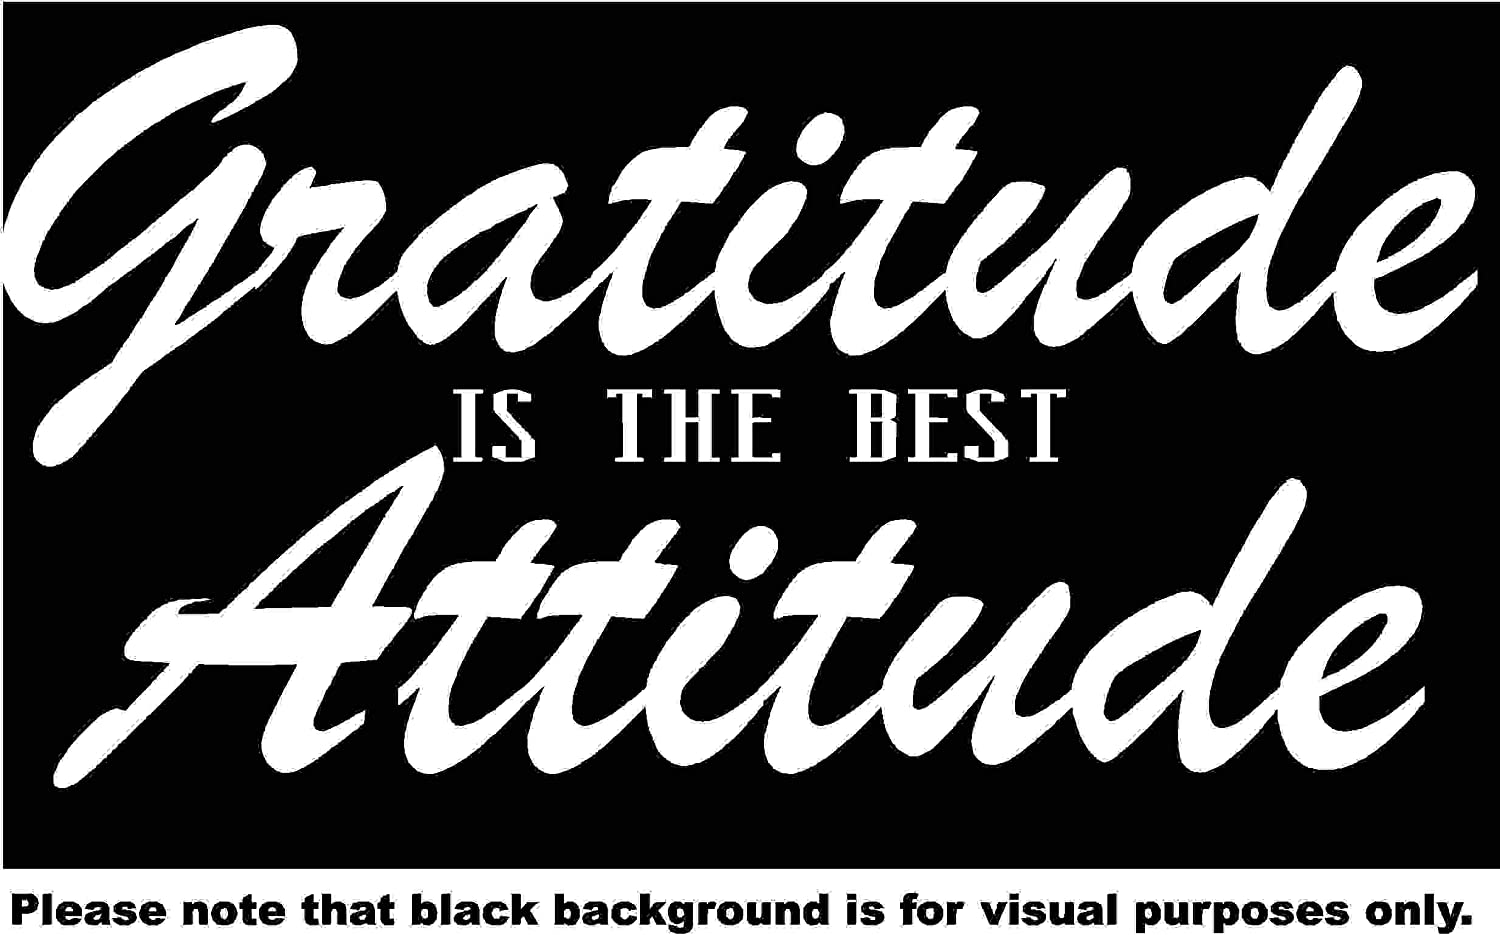 Gratitude is the best Attitude Quote Car Window Tumblers Wall Decal Sticker Vinyl Laptops Cellphones Phones Tablets Ipads Helmets Motorcycles Computer Towers V and T Gifts